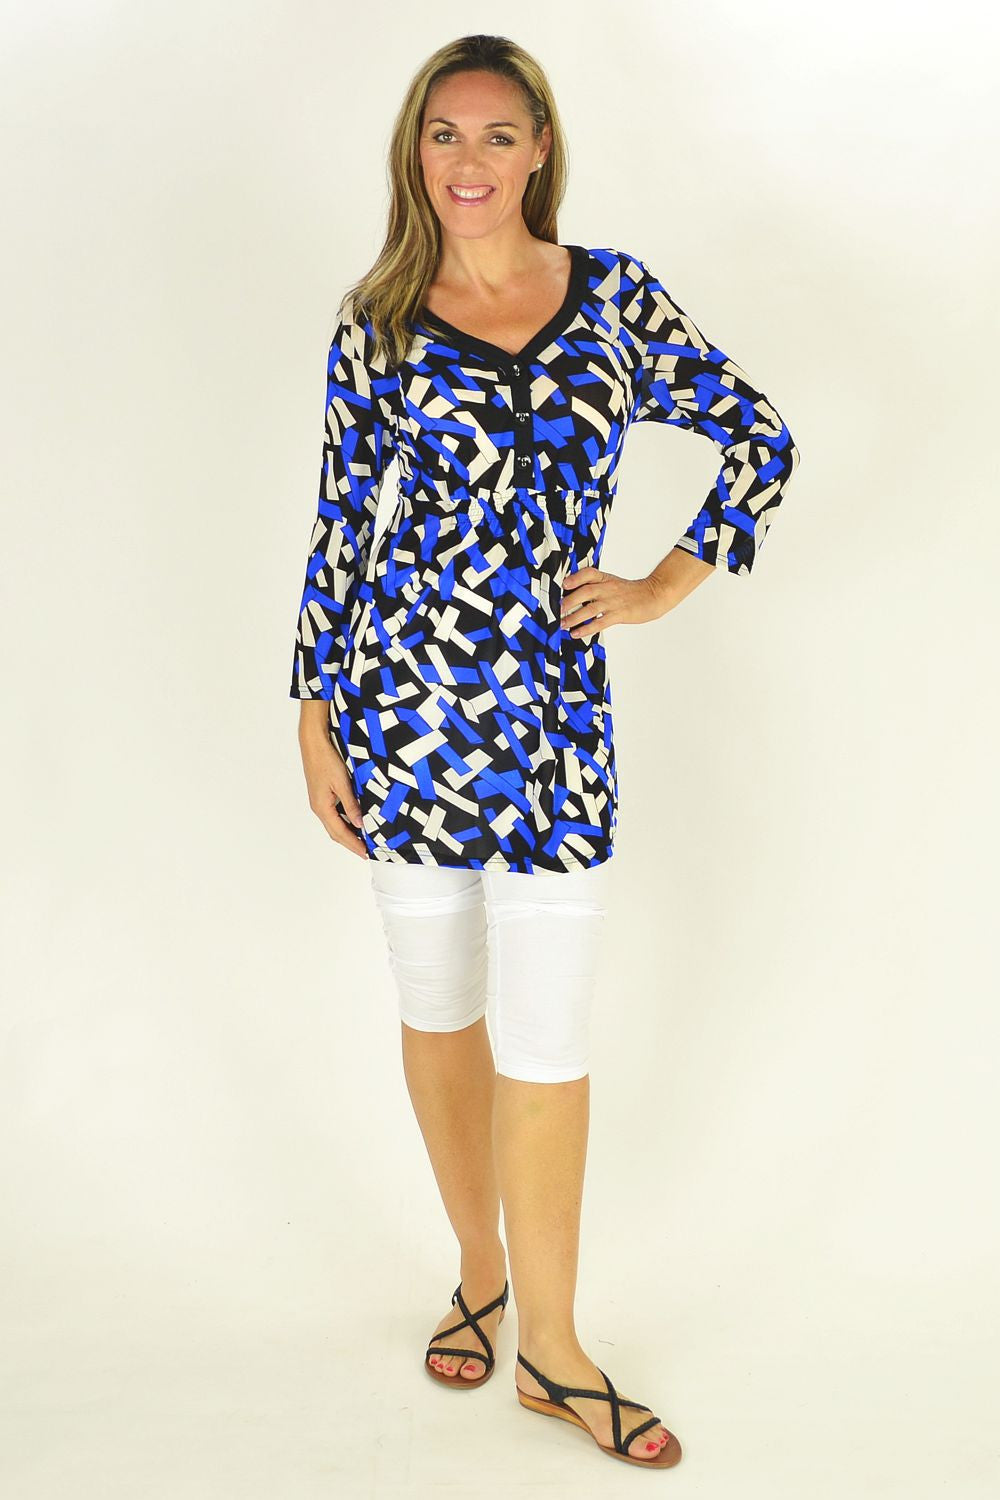 Clarity Shapes Tunic Top | I Love Tunics | Tunic Tops | Tunic | Tunic Dresses  | womens clothing online